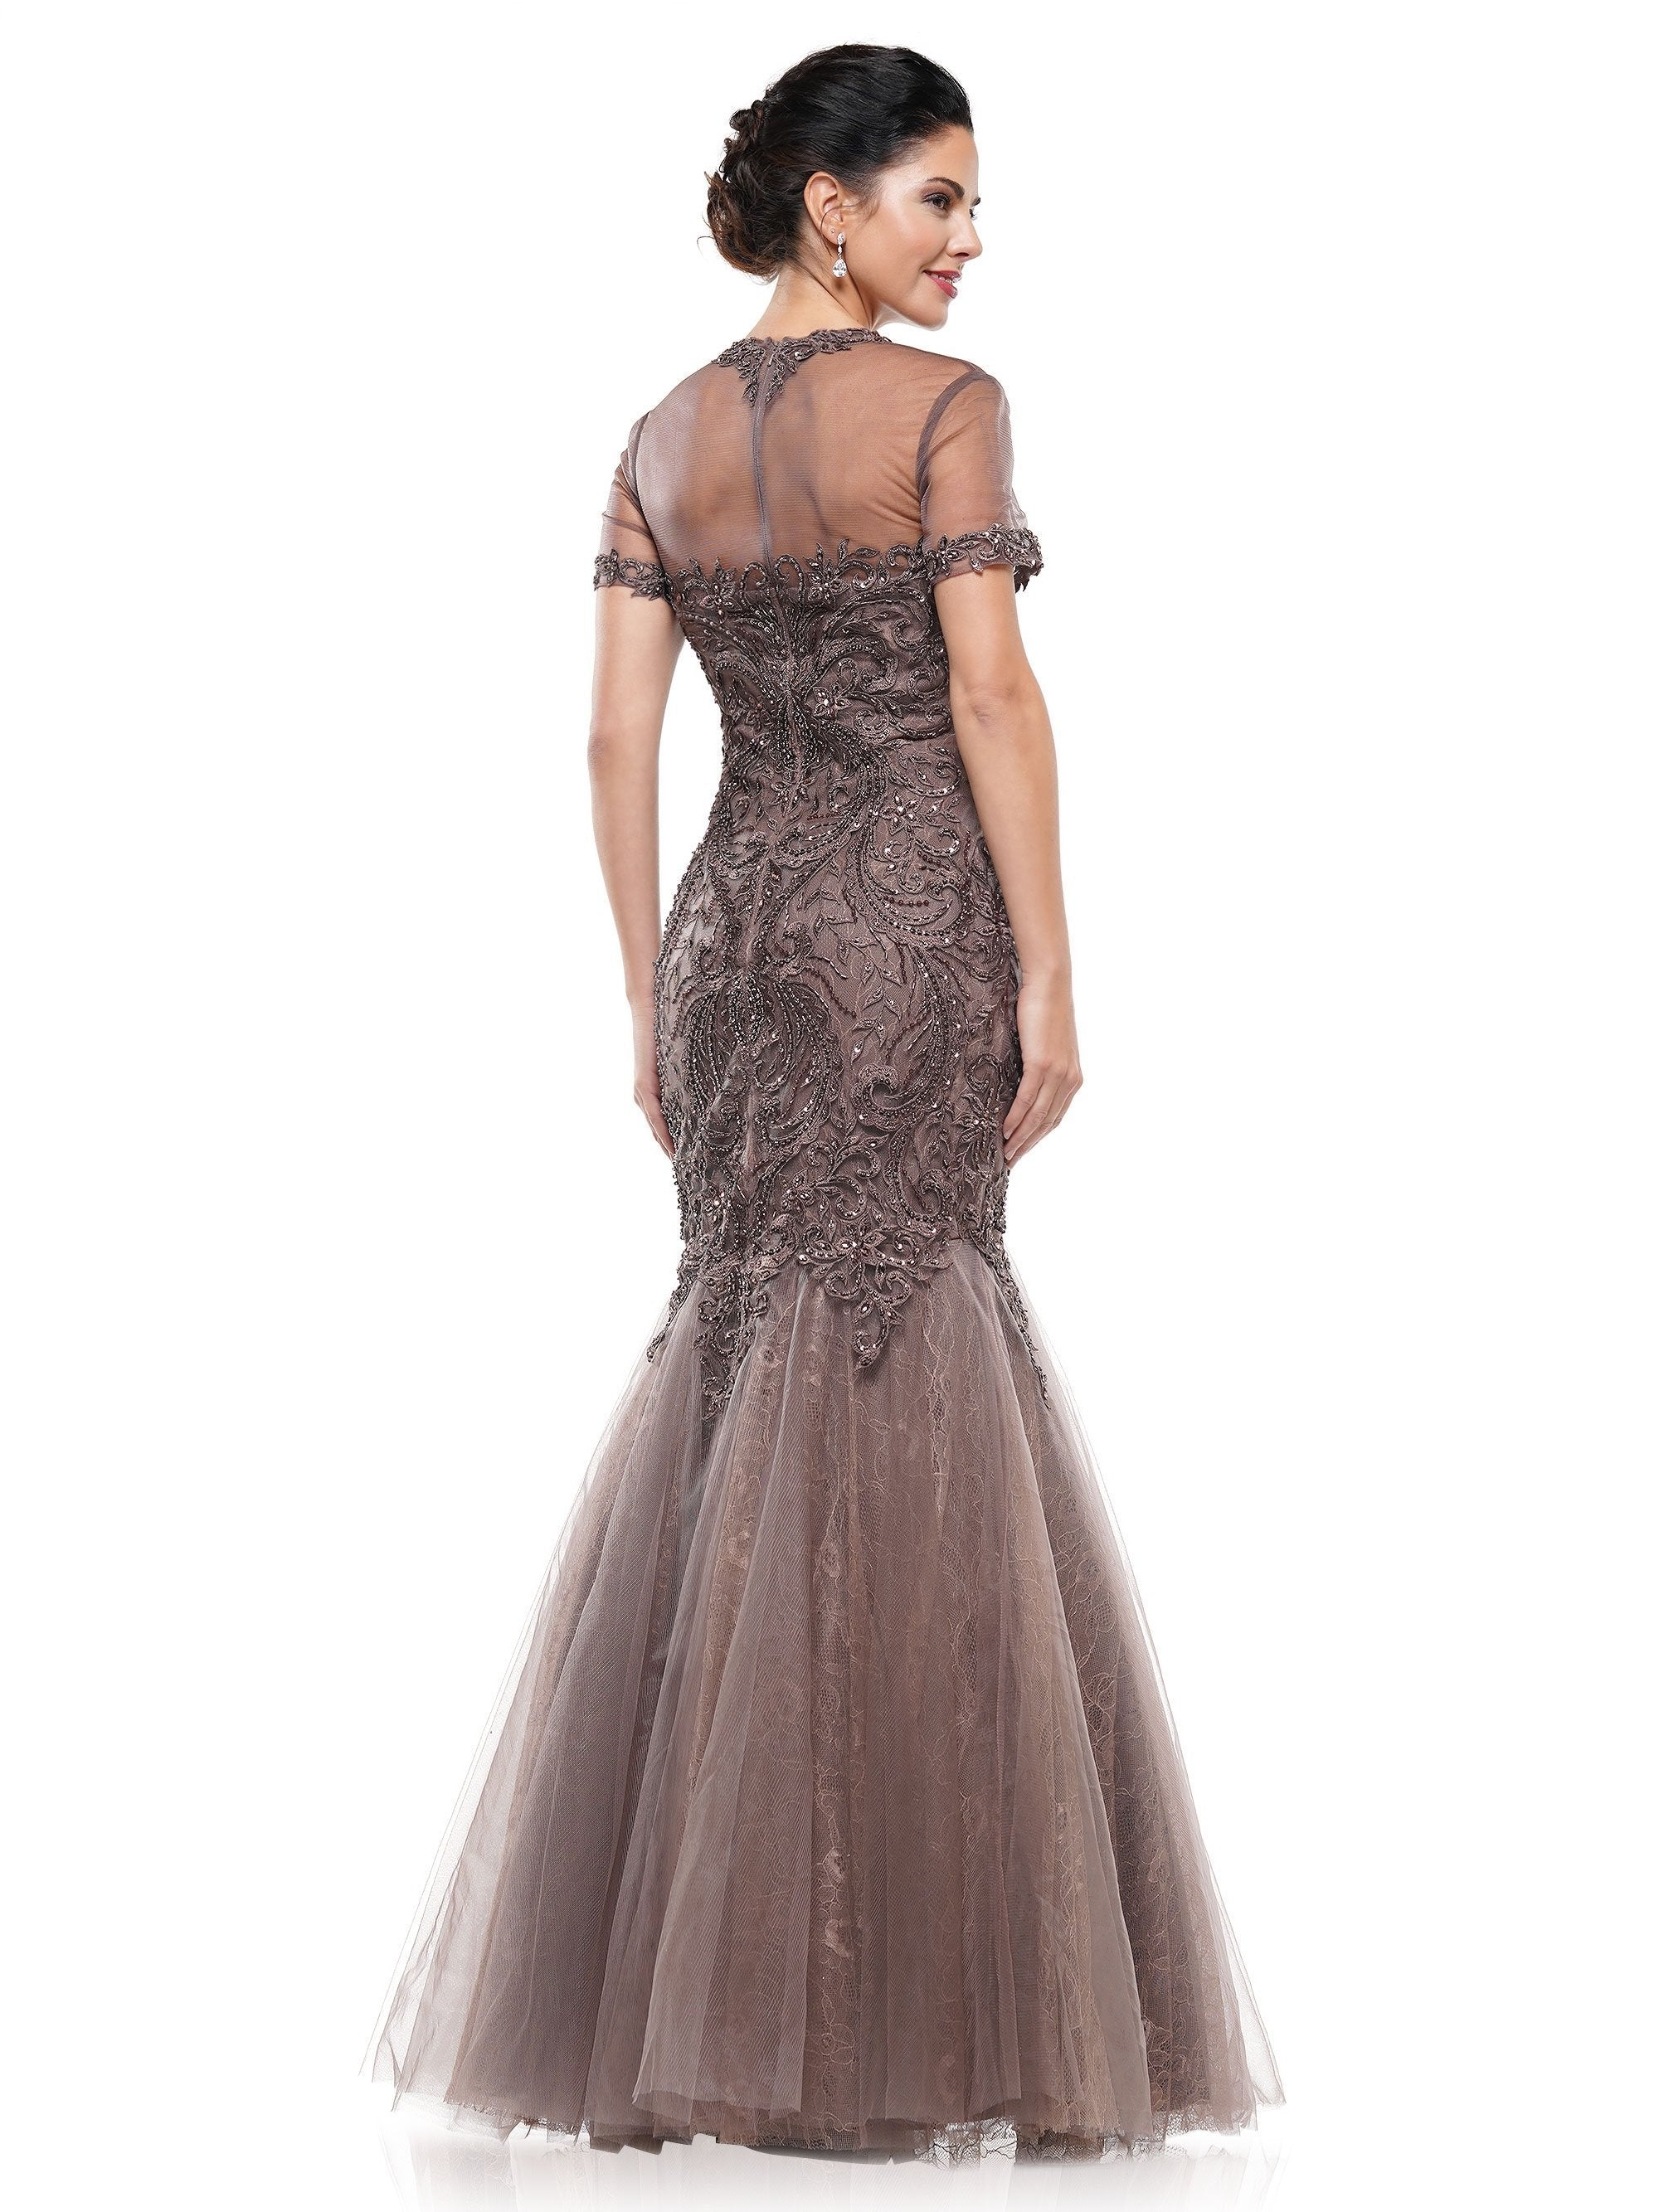 Marsoni by Colors - M259 Metallic Embroidered Sweetheart Trumpet Gown In Brown